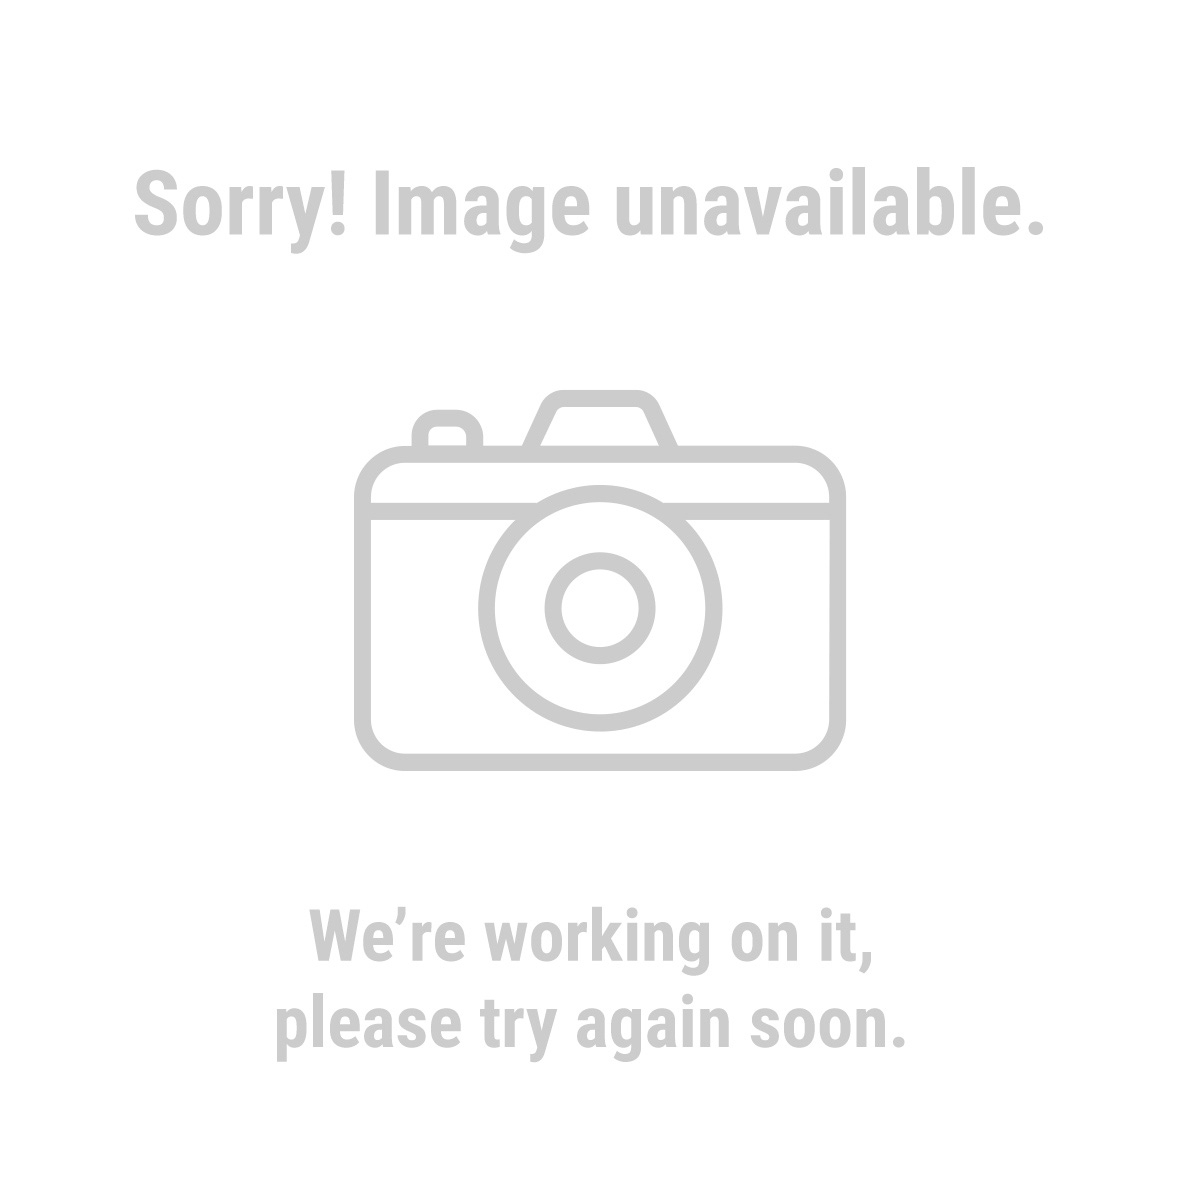 Electric Die Grinder Harbor Freight ~ Air tool noob a little disappointed ford explorer and